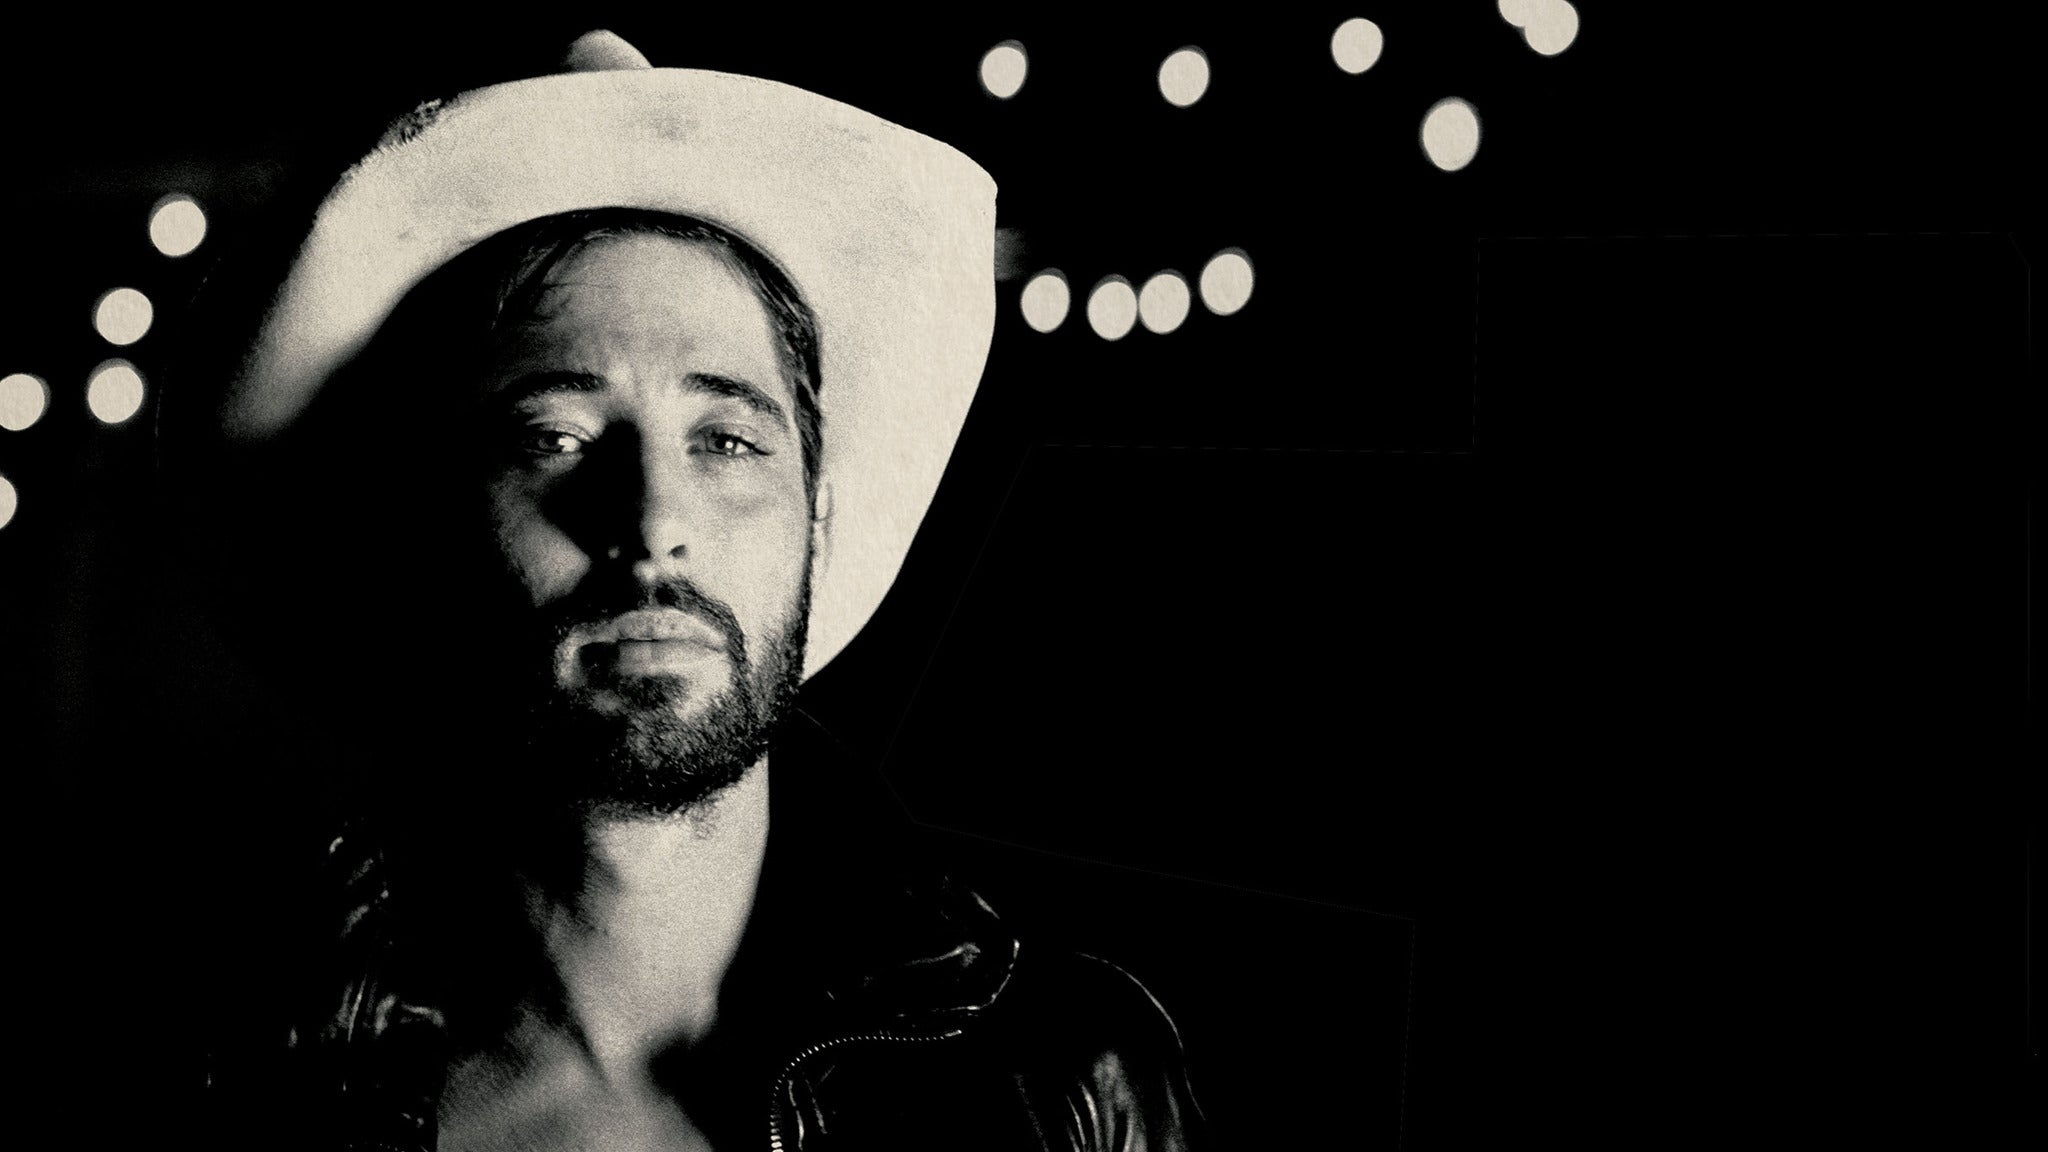 Ryan Bingham at Aztec Theatre presented by Cricket Wireless